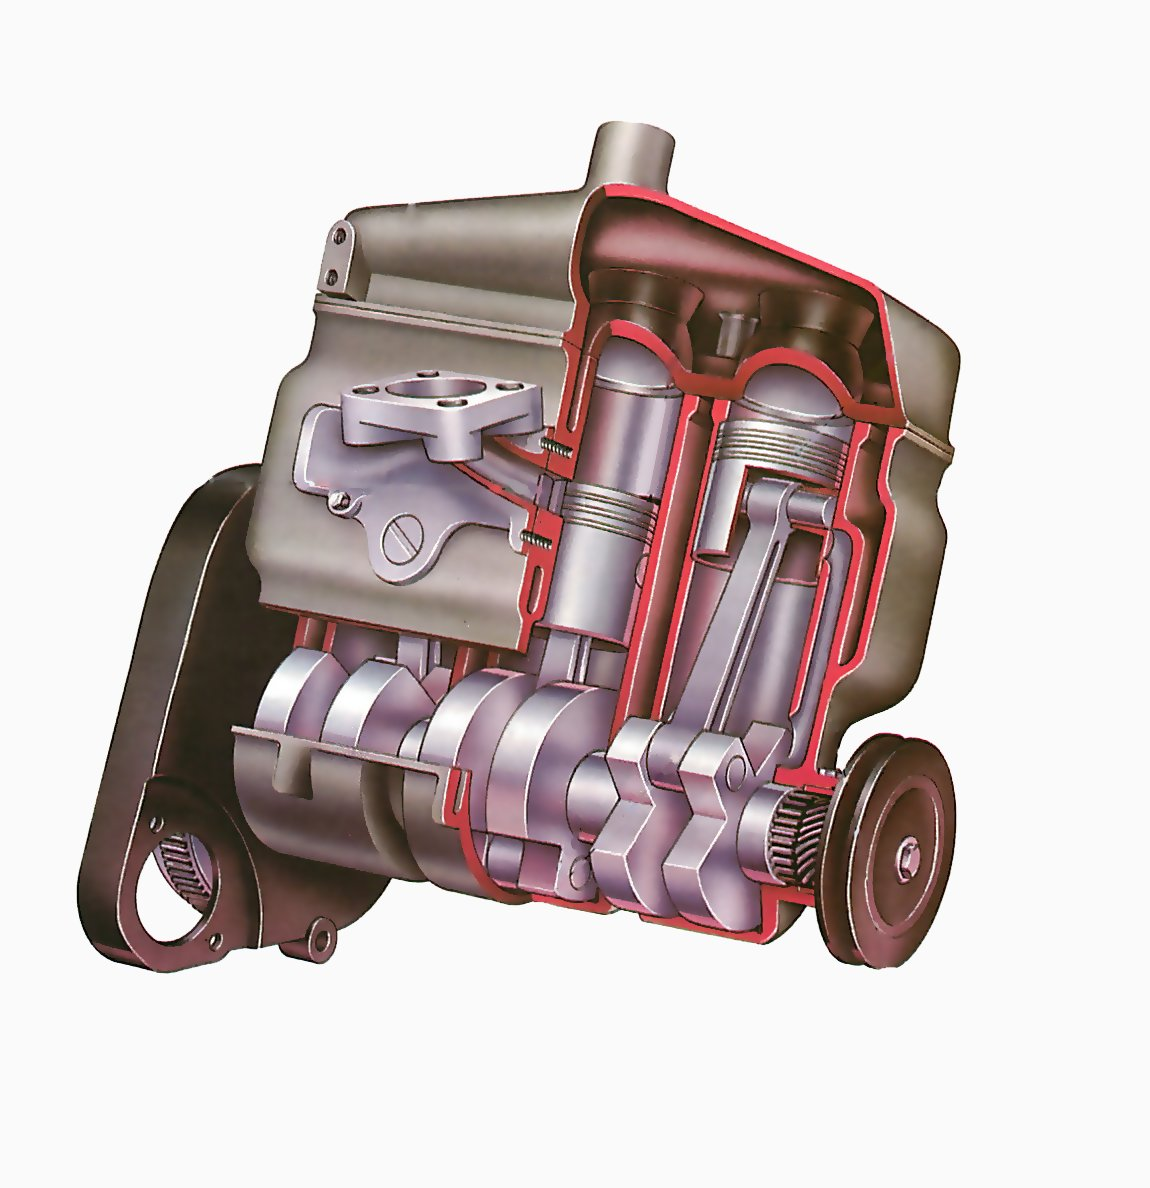 How a two-stroke engine works